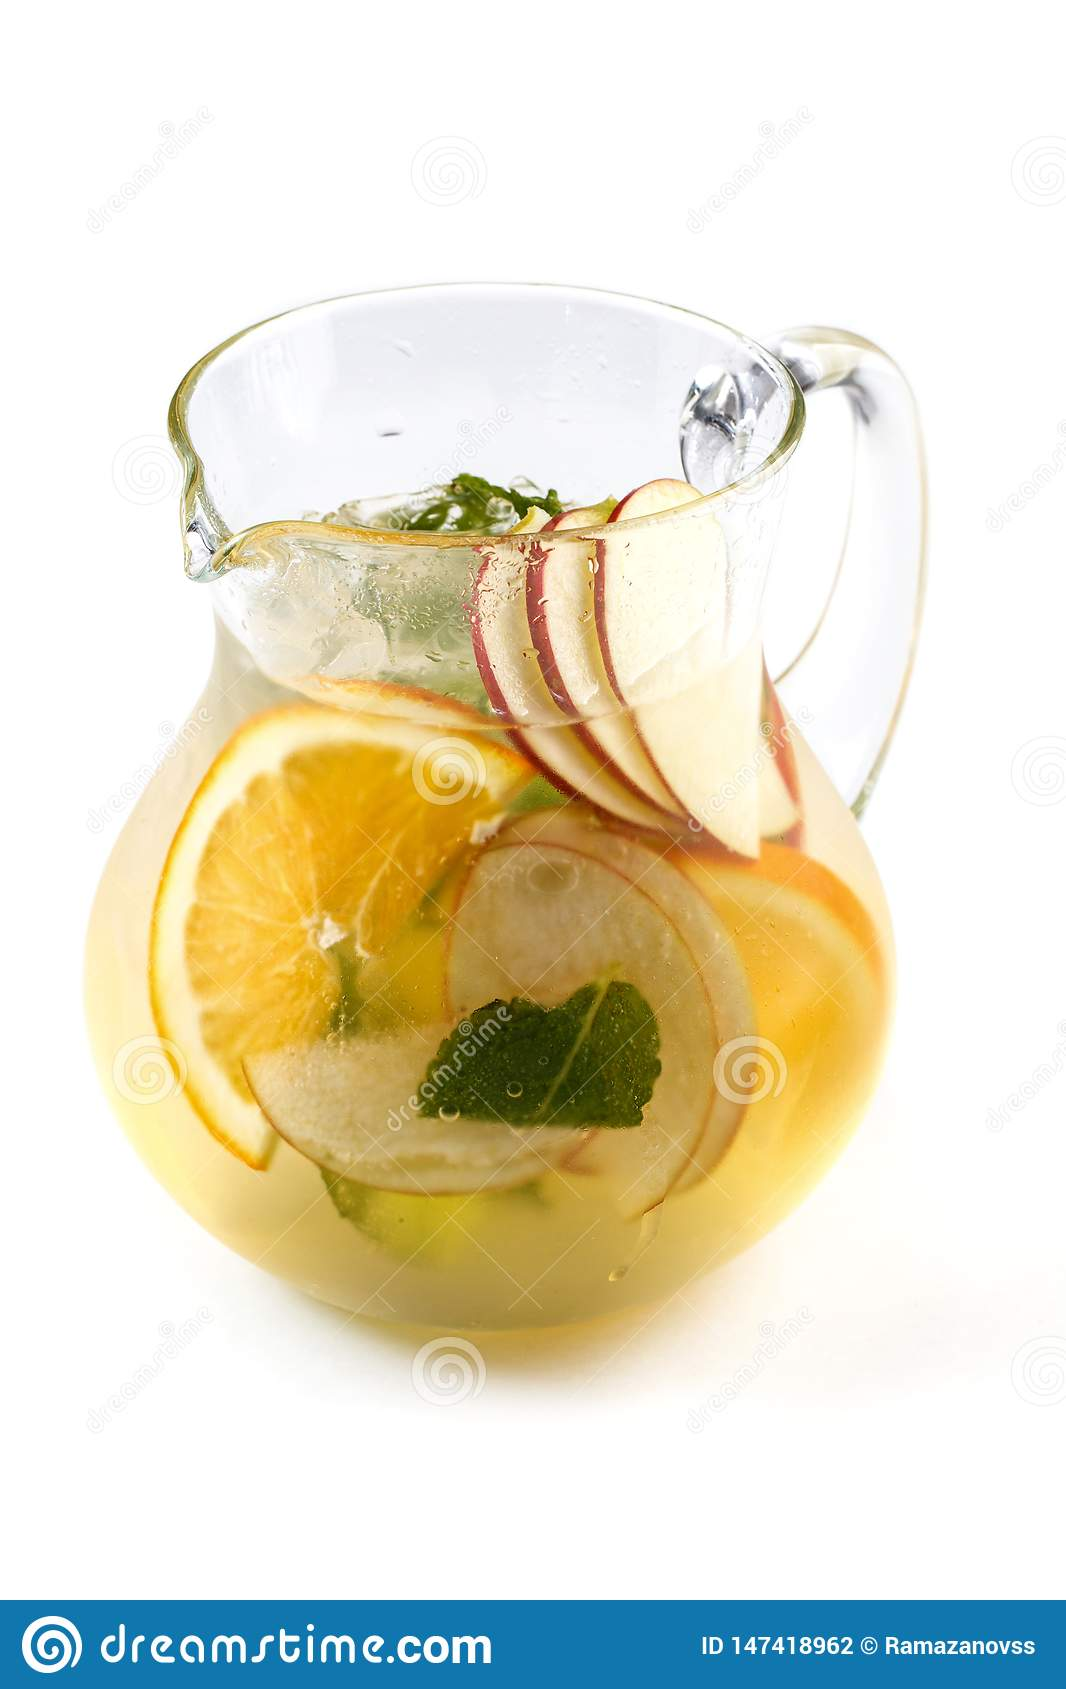 Fruit lemonade with slices of apples and oranges in a jug on an isolated white background